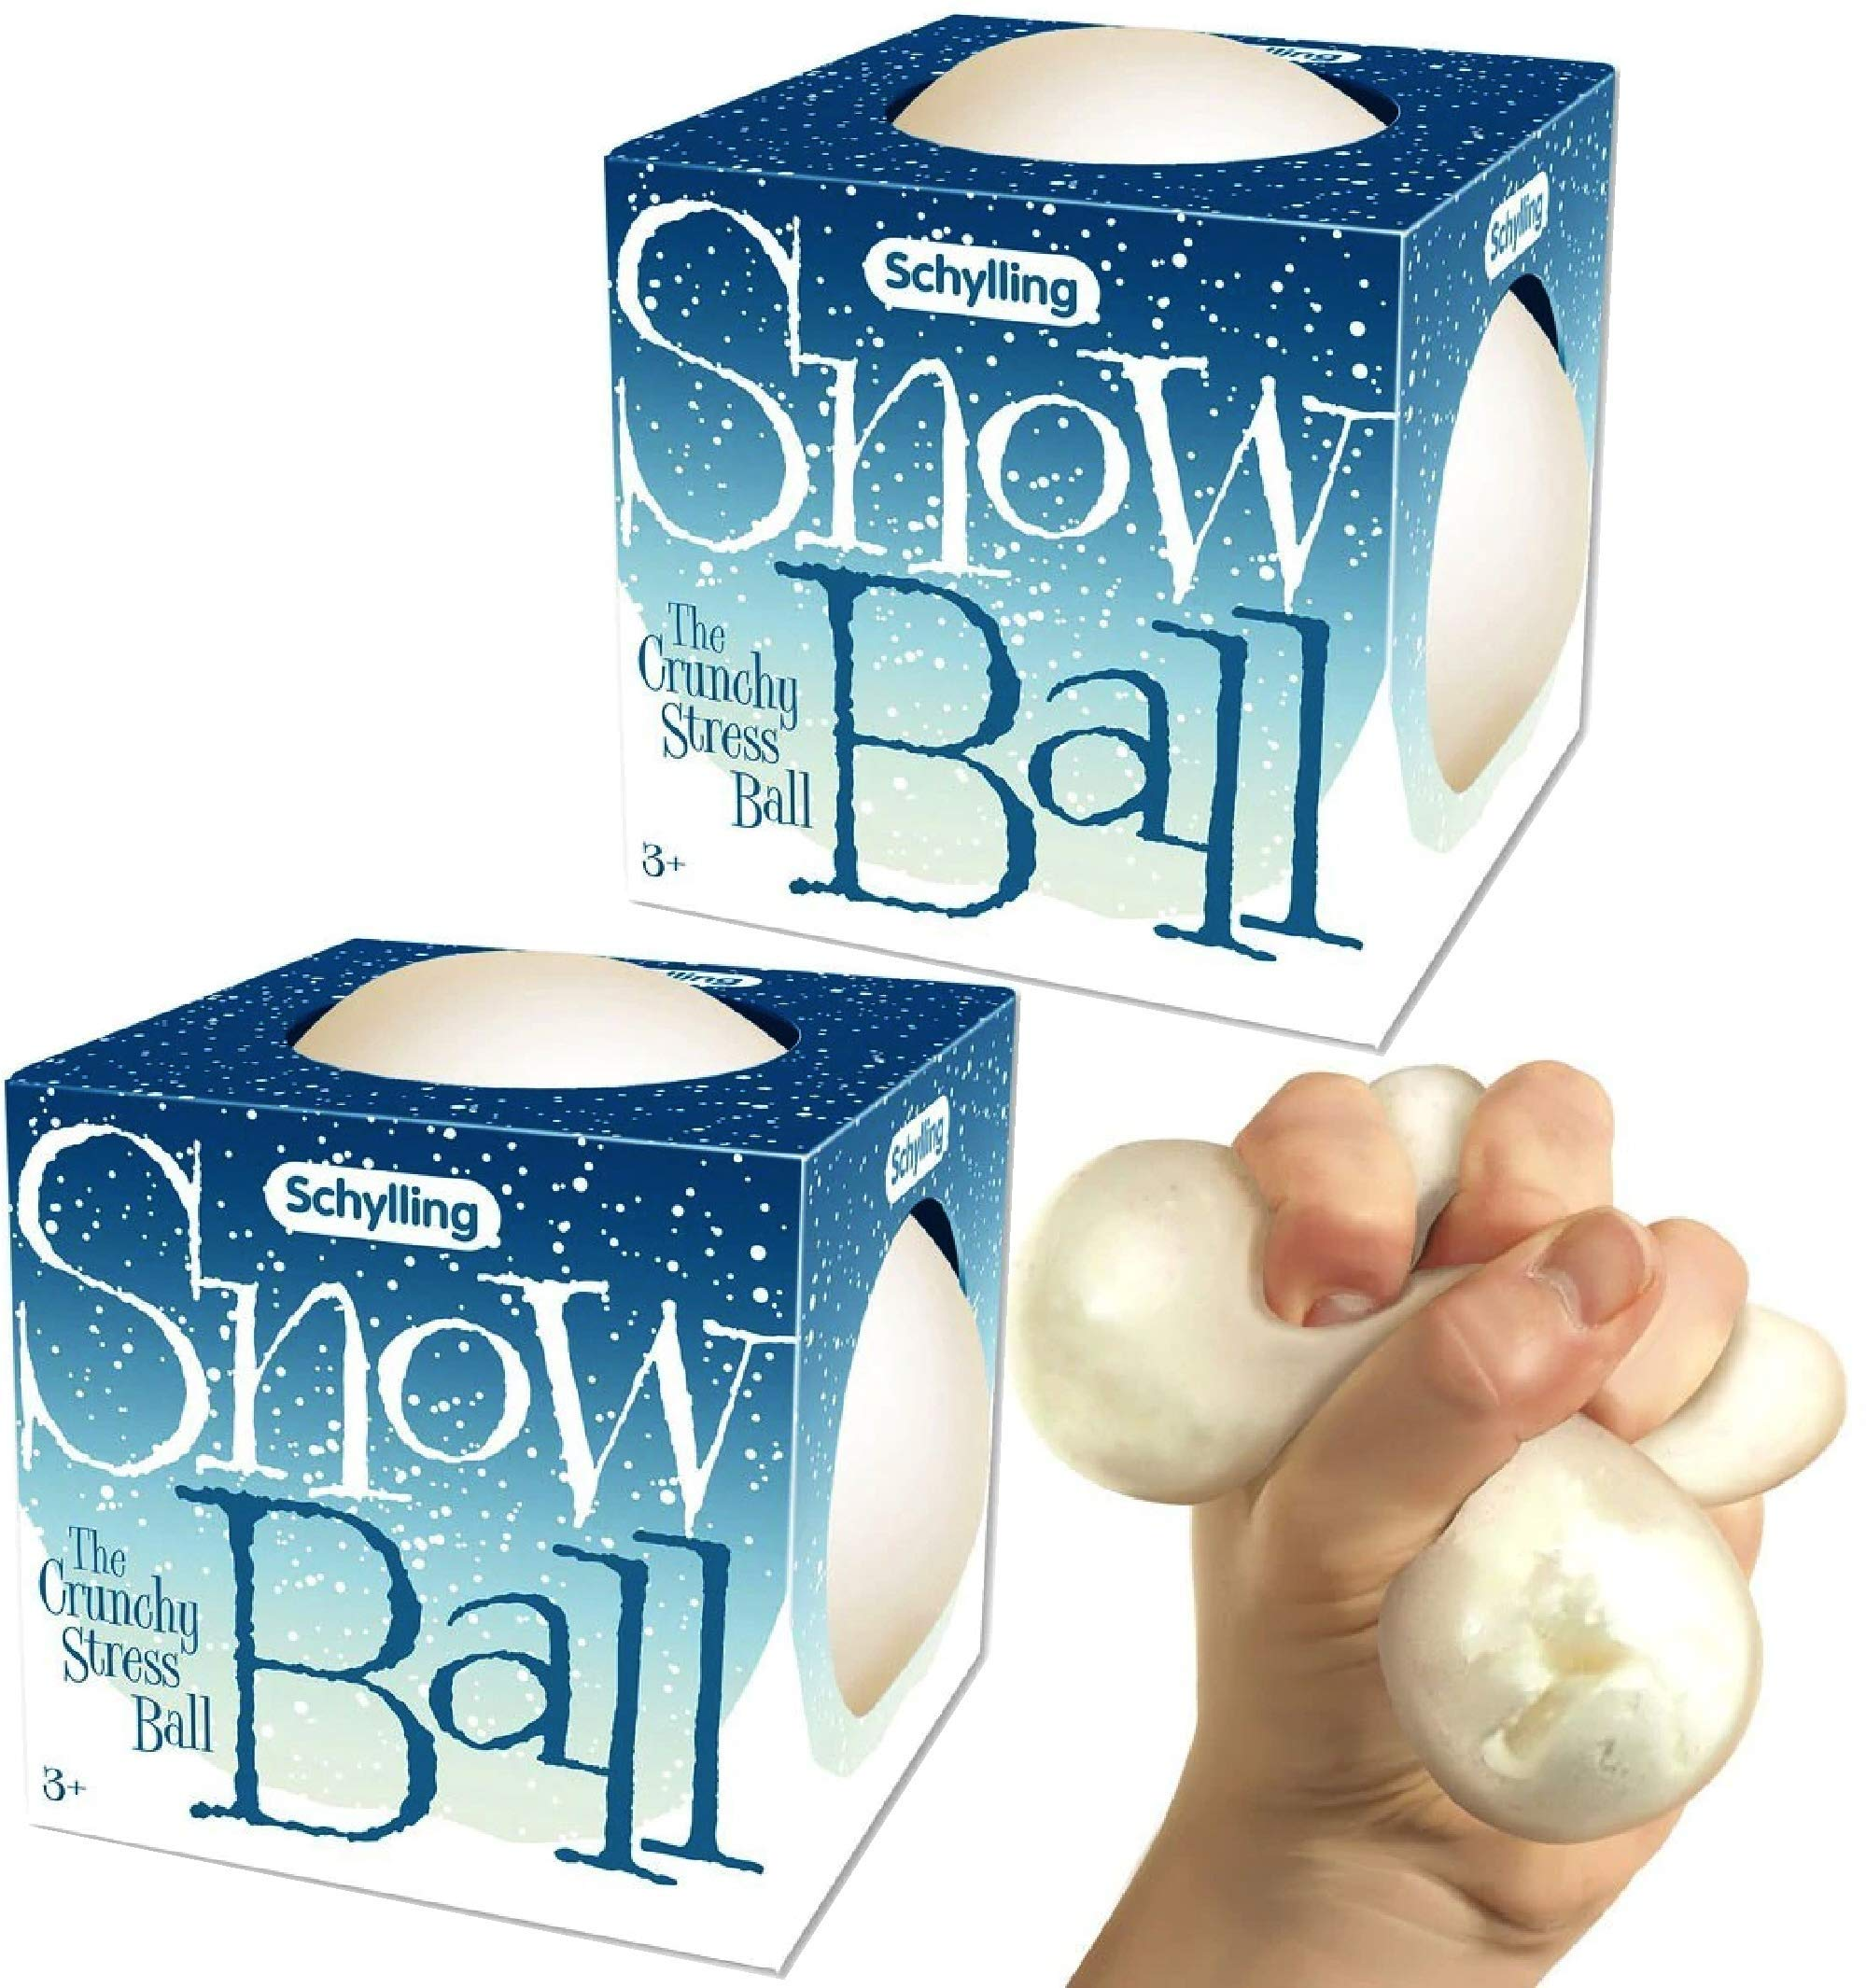 Schylling Snow Ball (NeeDoh) Crunchy, Squishy, Squeezy, Stretchy Stress Balls Gift Set Bundle - 2 Pack